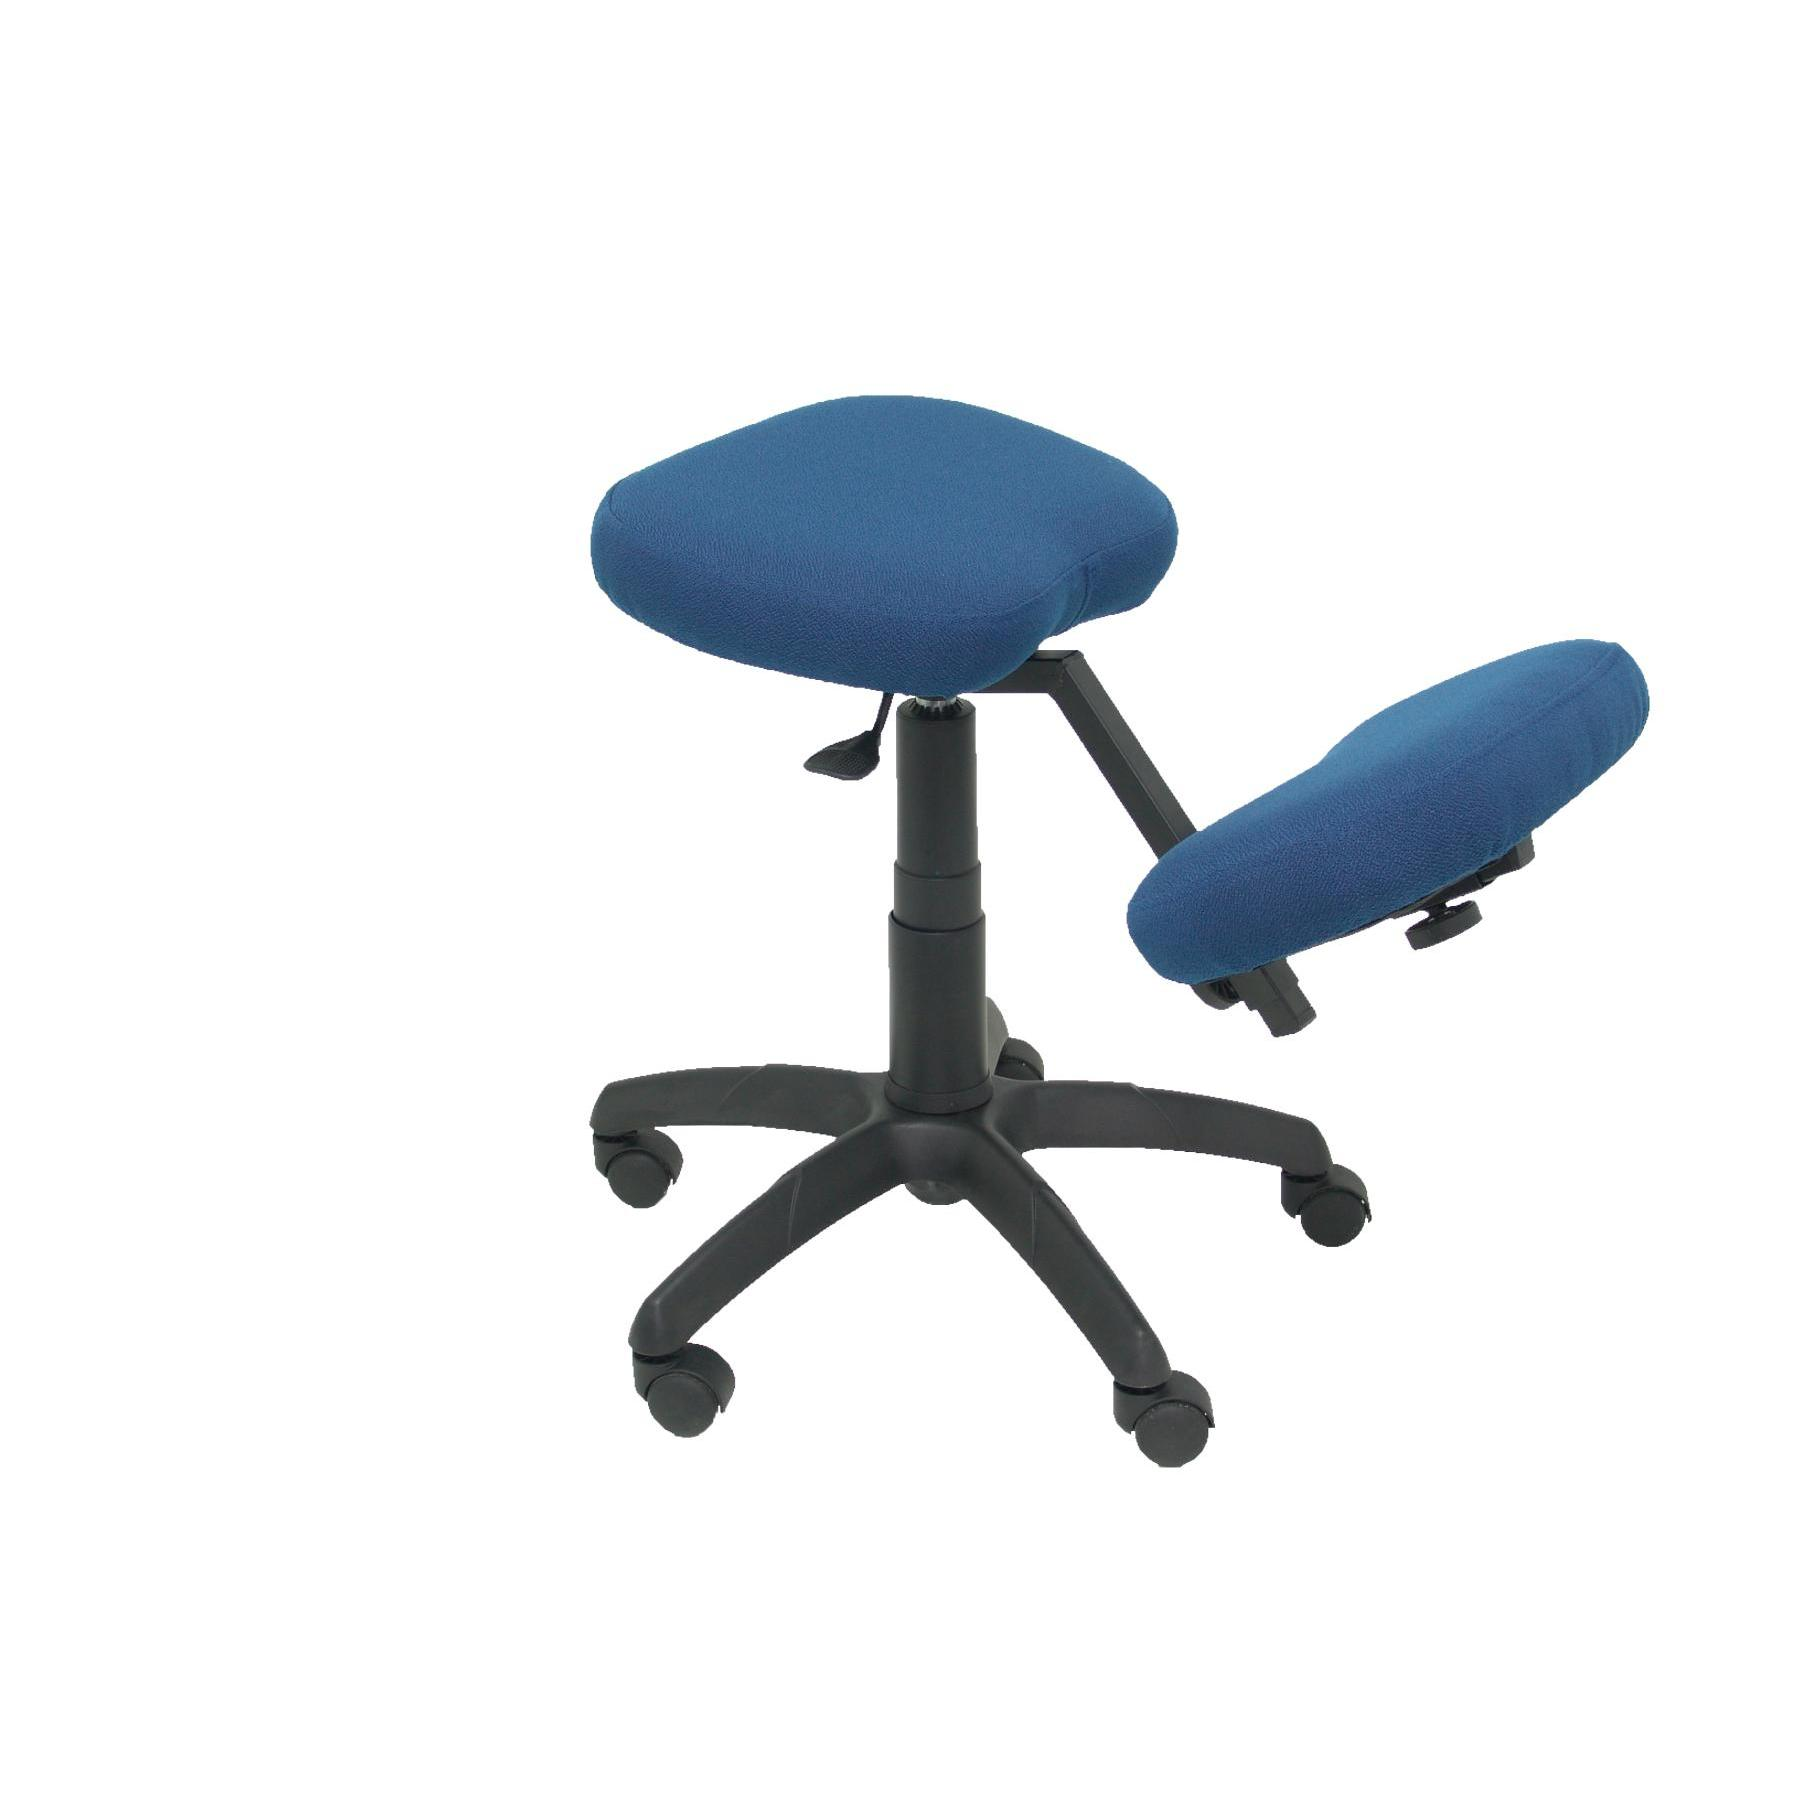 Office's Stool Ergonomic Swivel And Dimmable In High Altitude Up Seat Upholstered In BALI Tissue Color Navy Blue (RODI